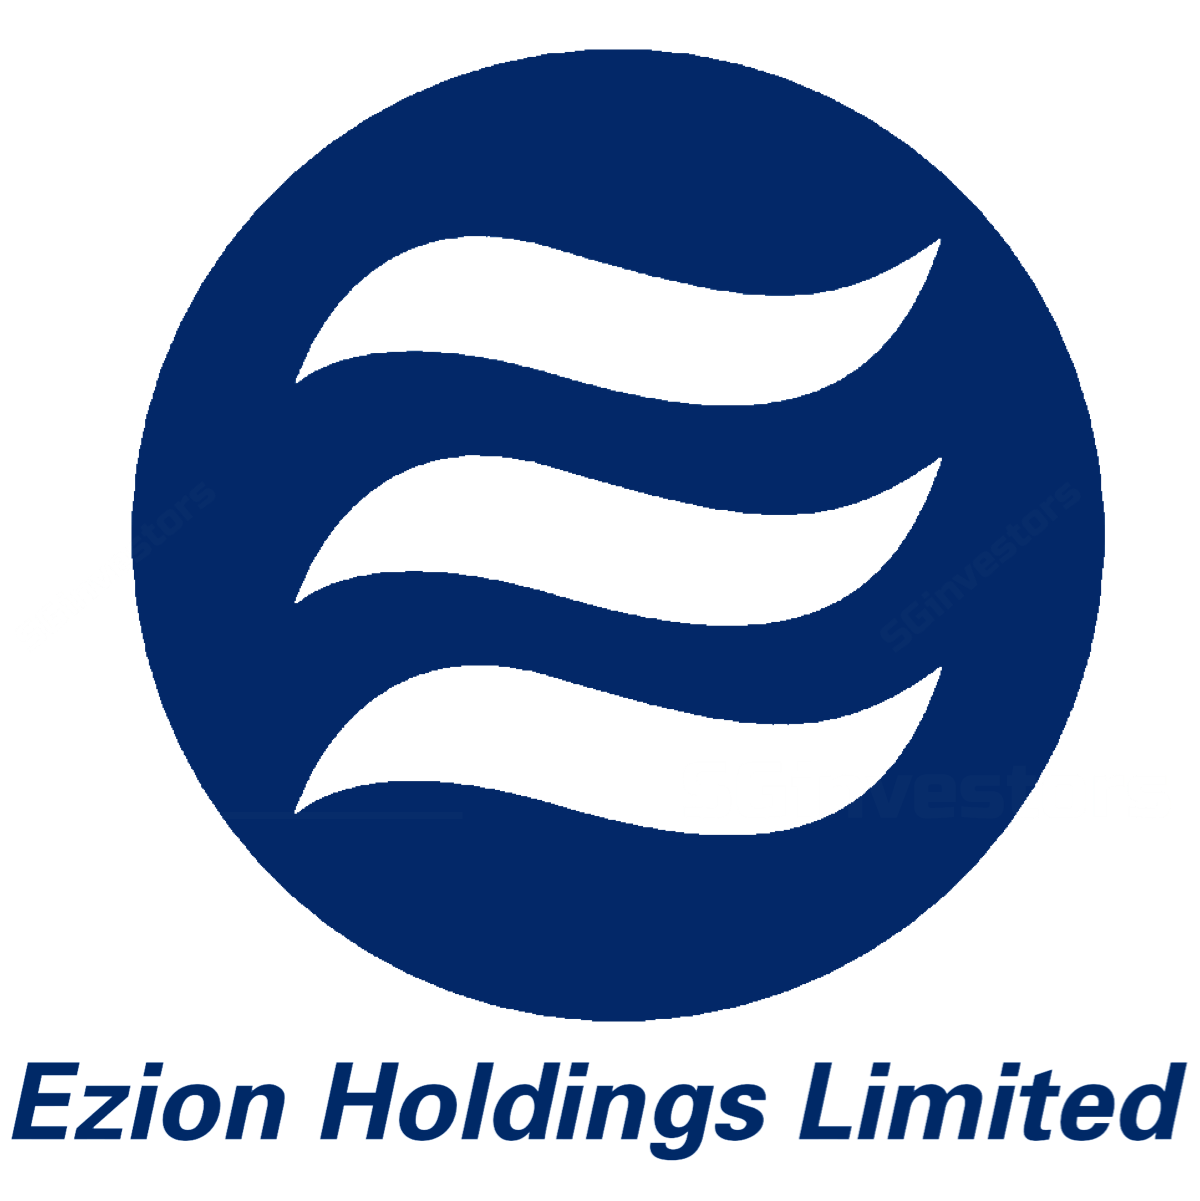 Ezion Holdings - OCBC Investment 2017-01-13: Negatives largely priced in